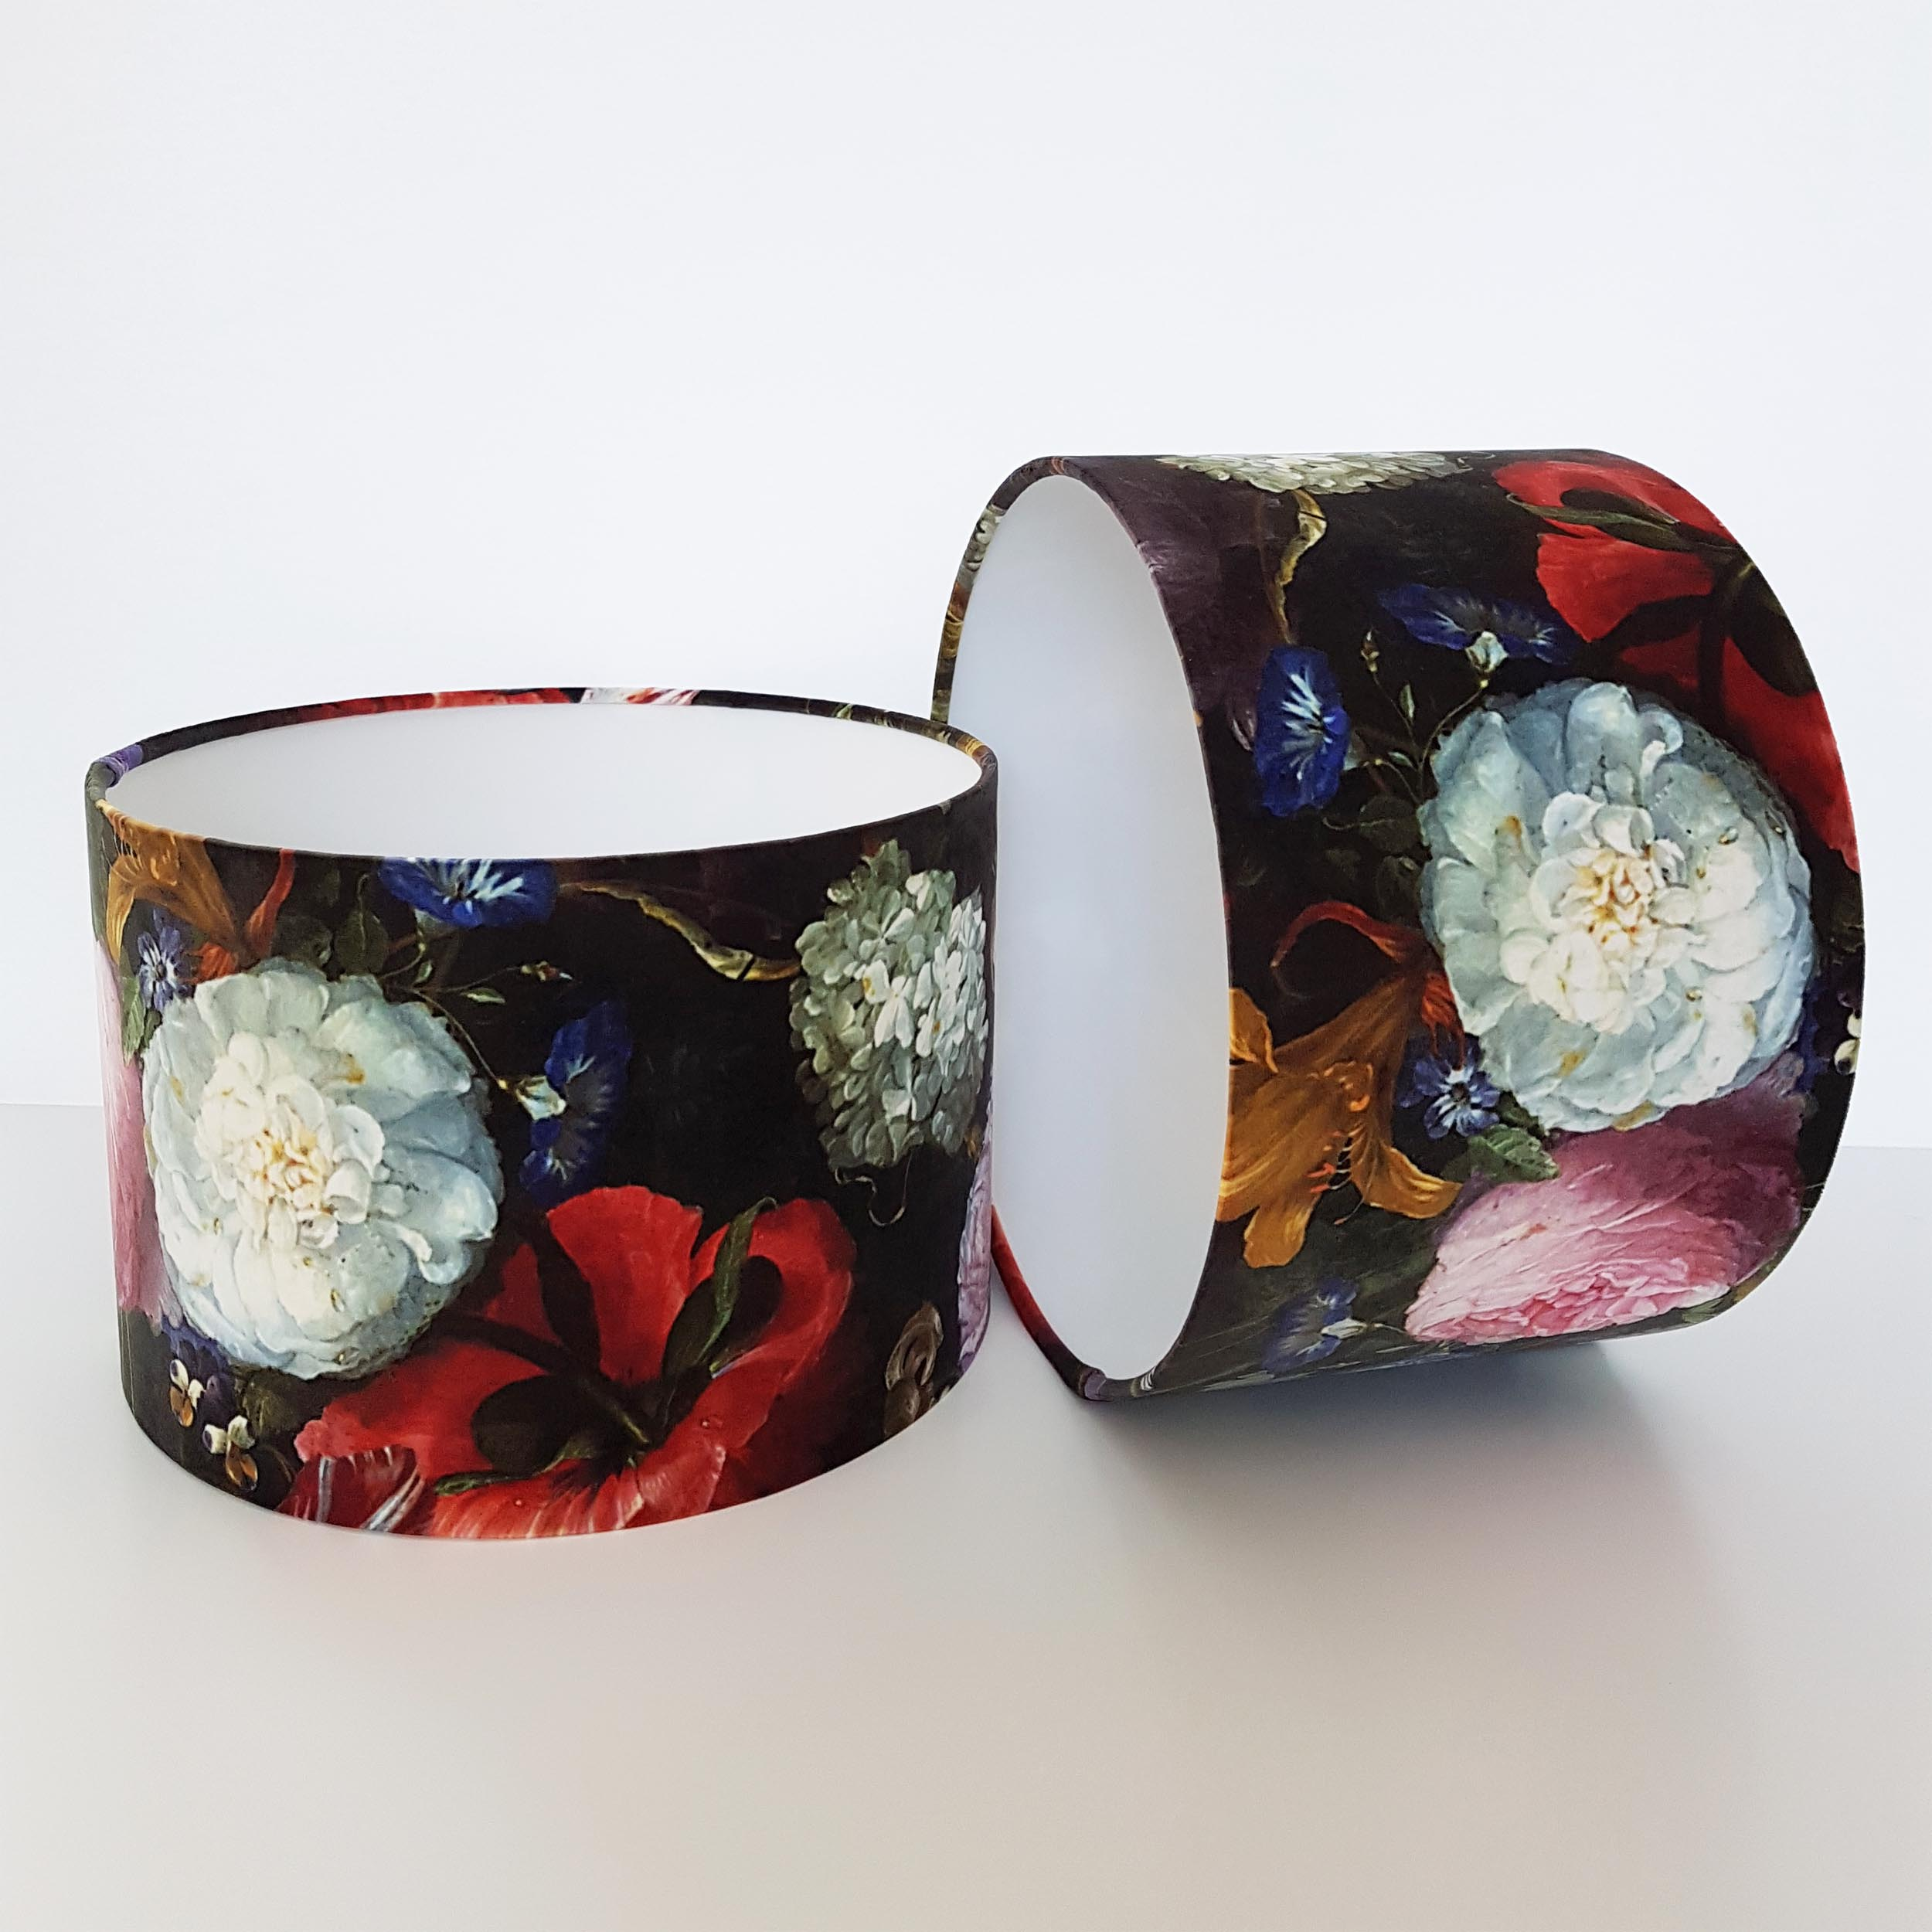 Bold Floral Lampshade in a Soft Velvet, featuring peony and blossom